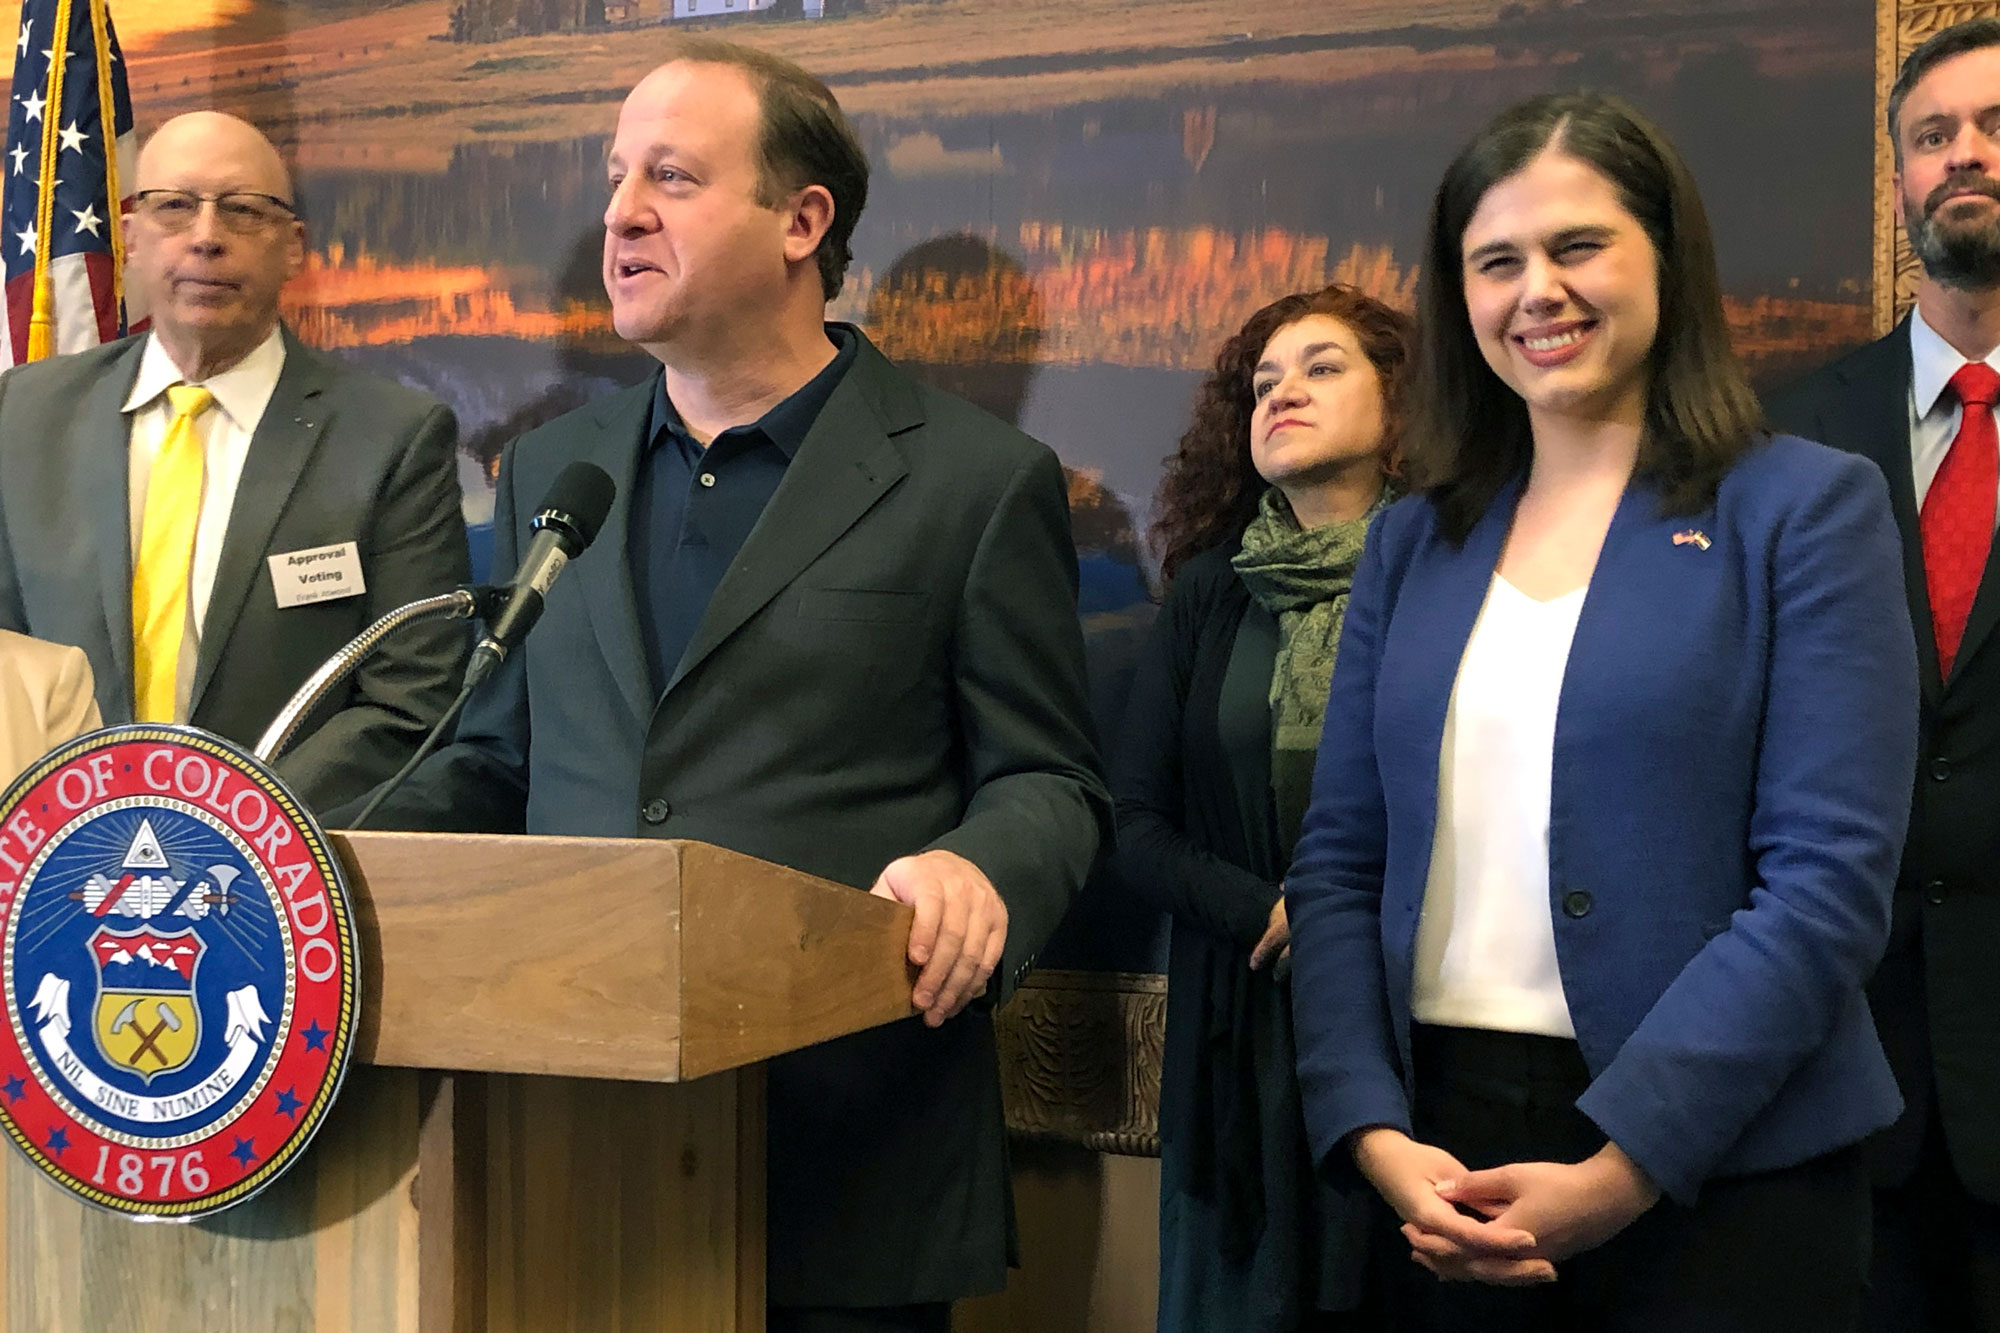 Photo: Jared Polis Jena Griswold Super Tuesday